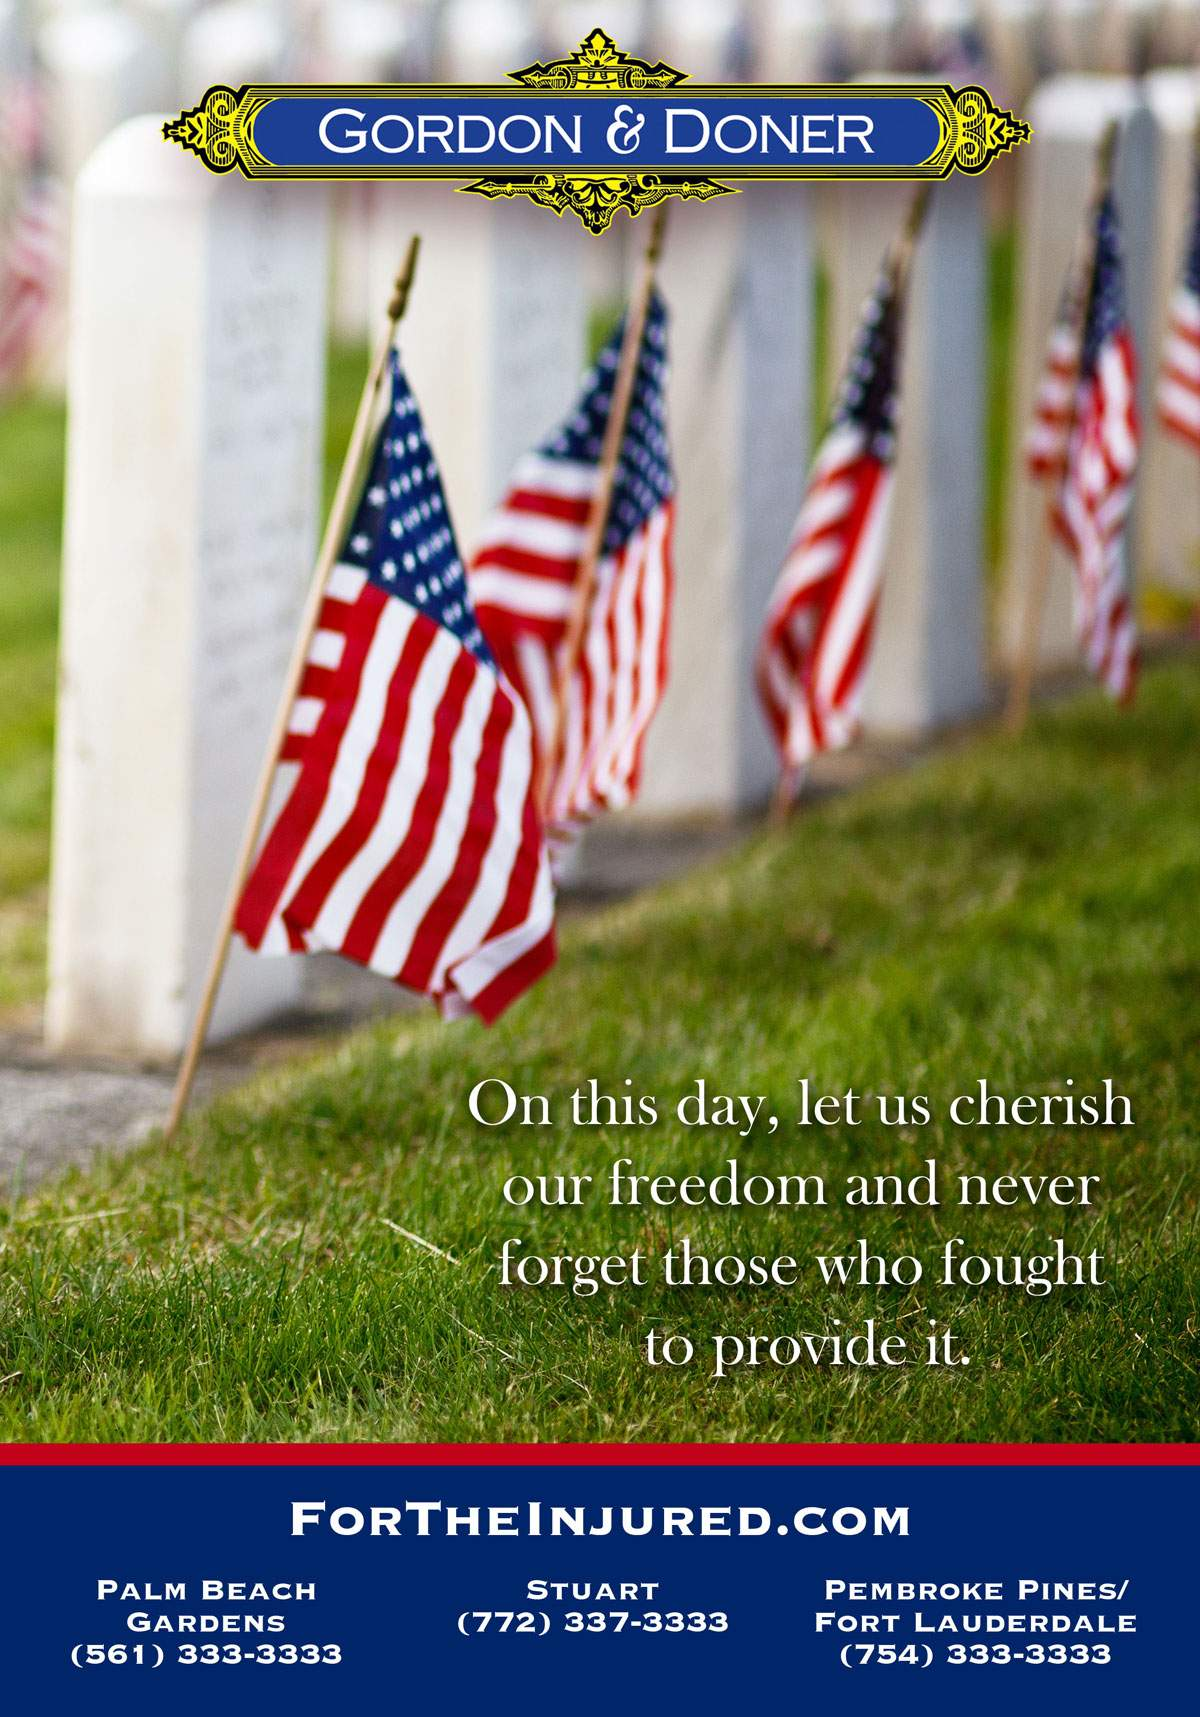 Gordon Doner Memorial Day E-blast